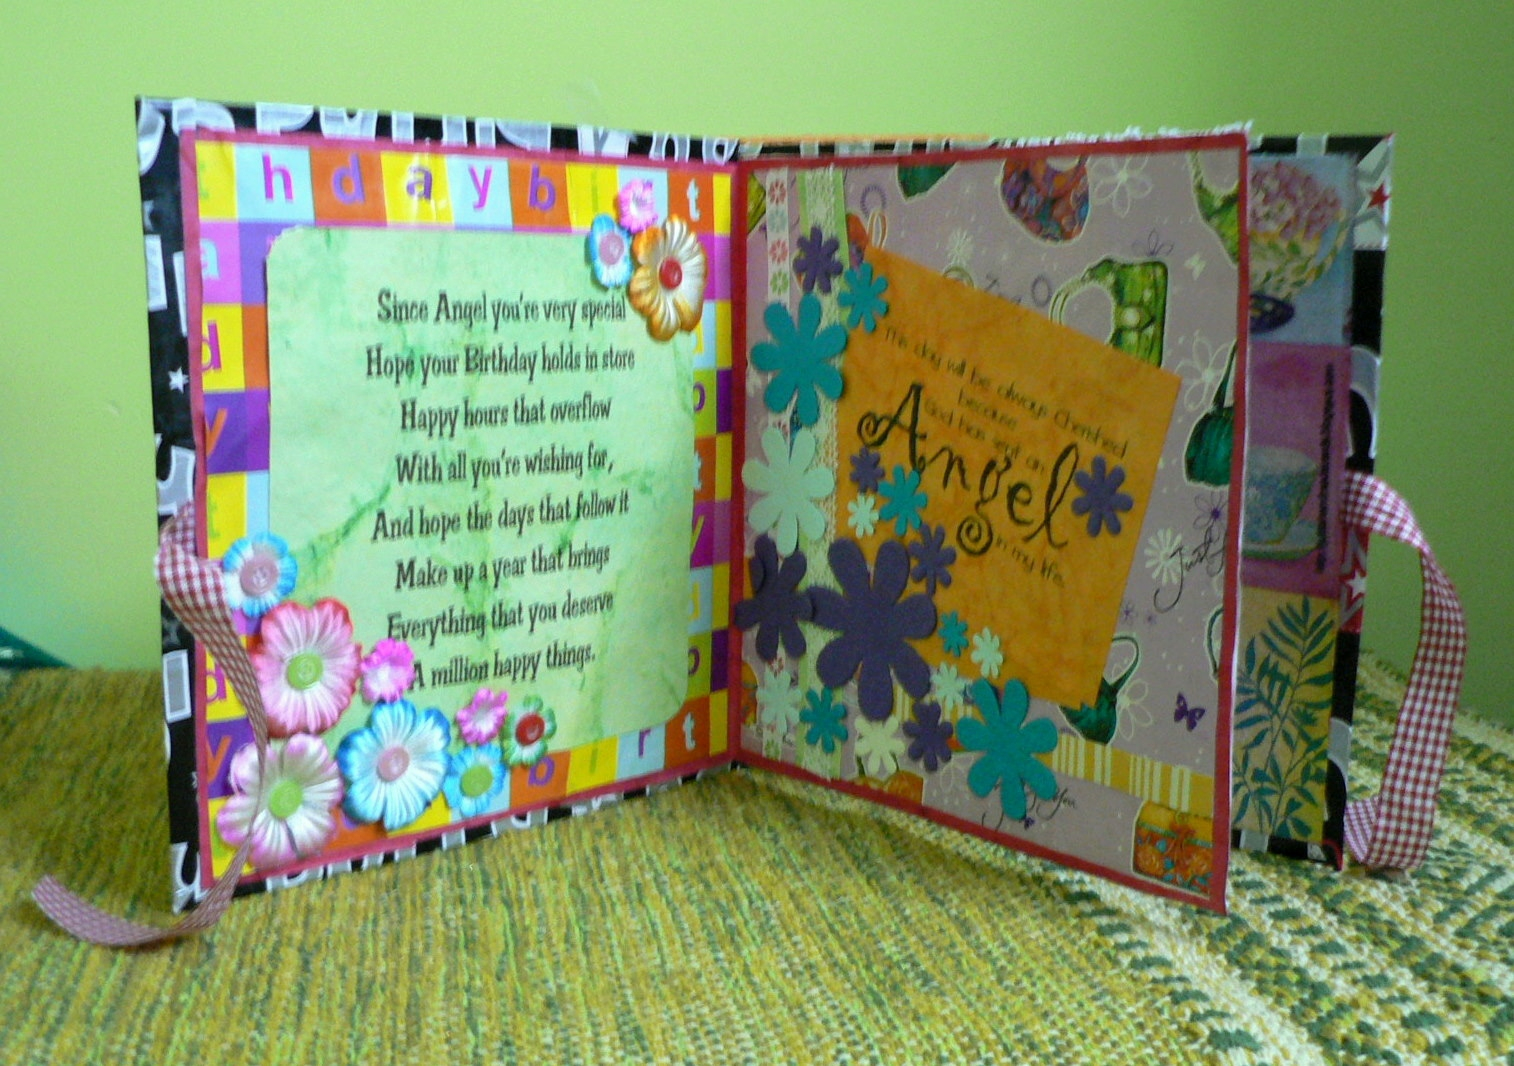 Ideas To Make A Birthday Card For A Best Friend Creative Handmade Birthday Card Ideas For Best Friend Cardfssn